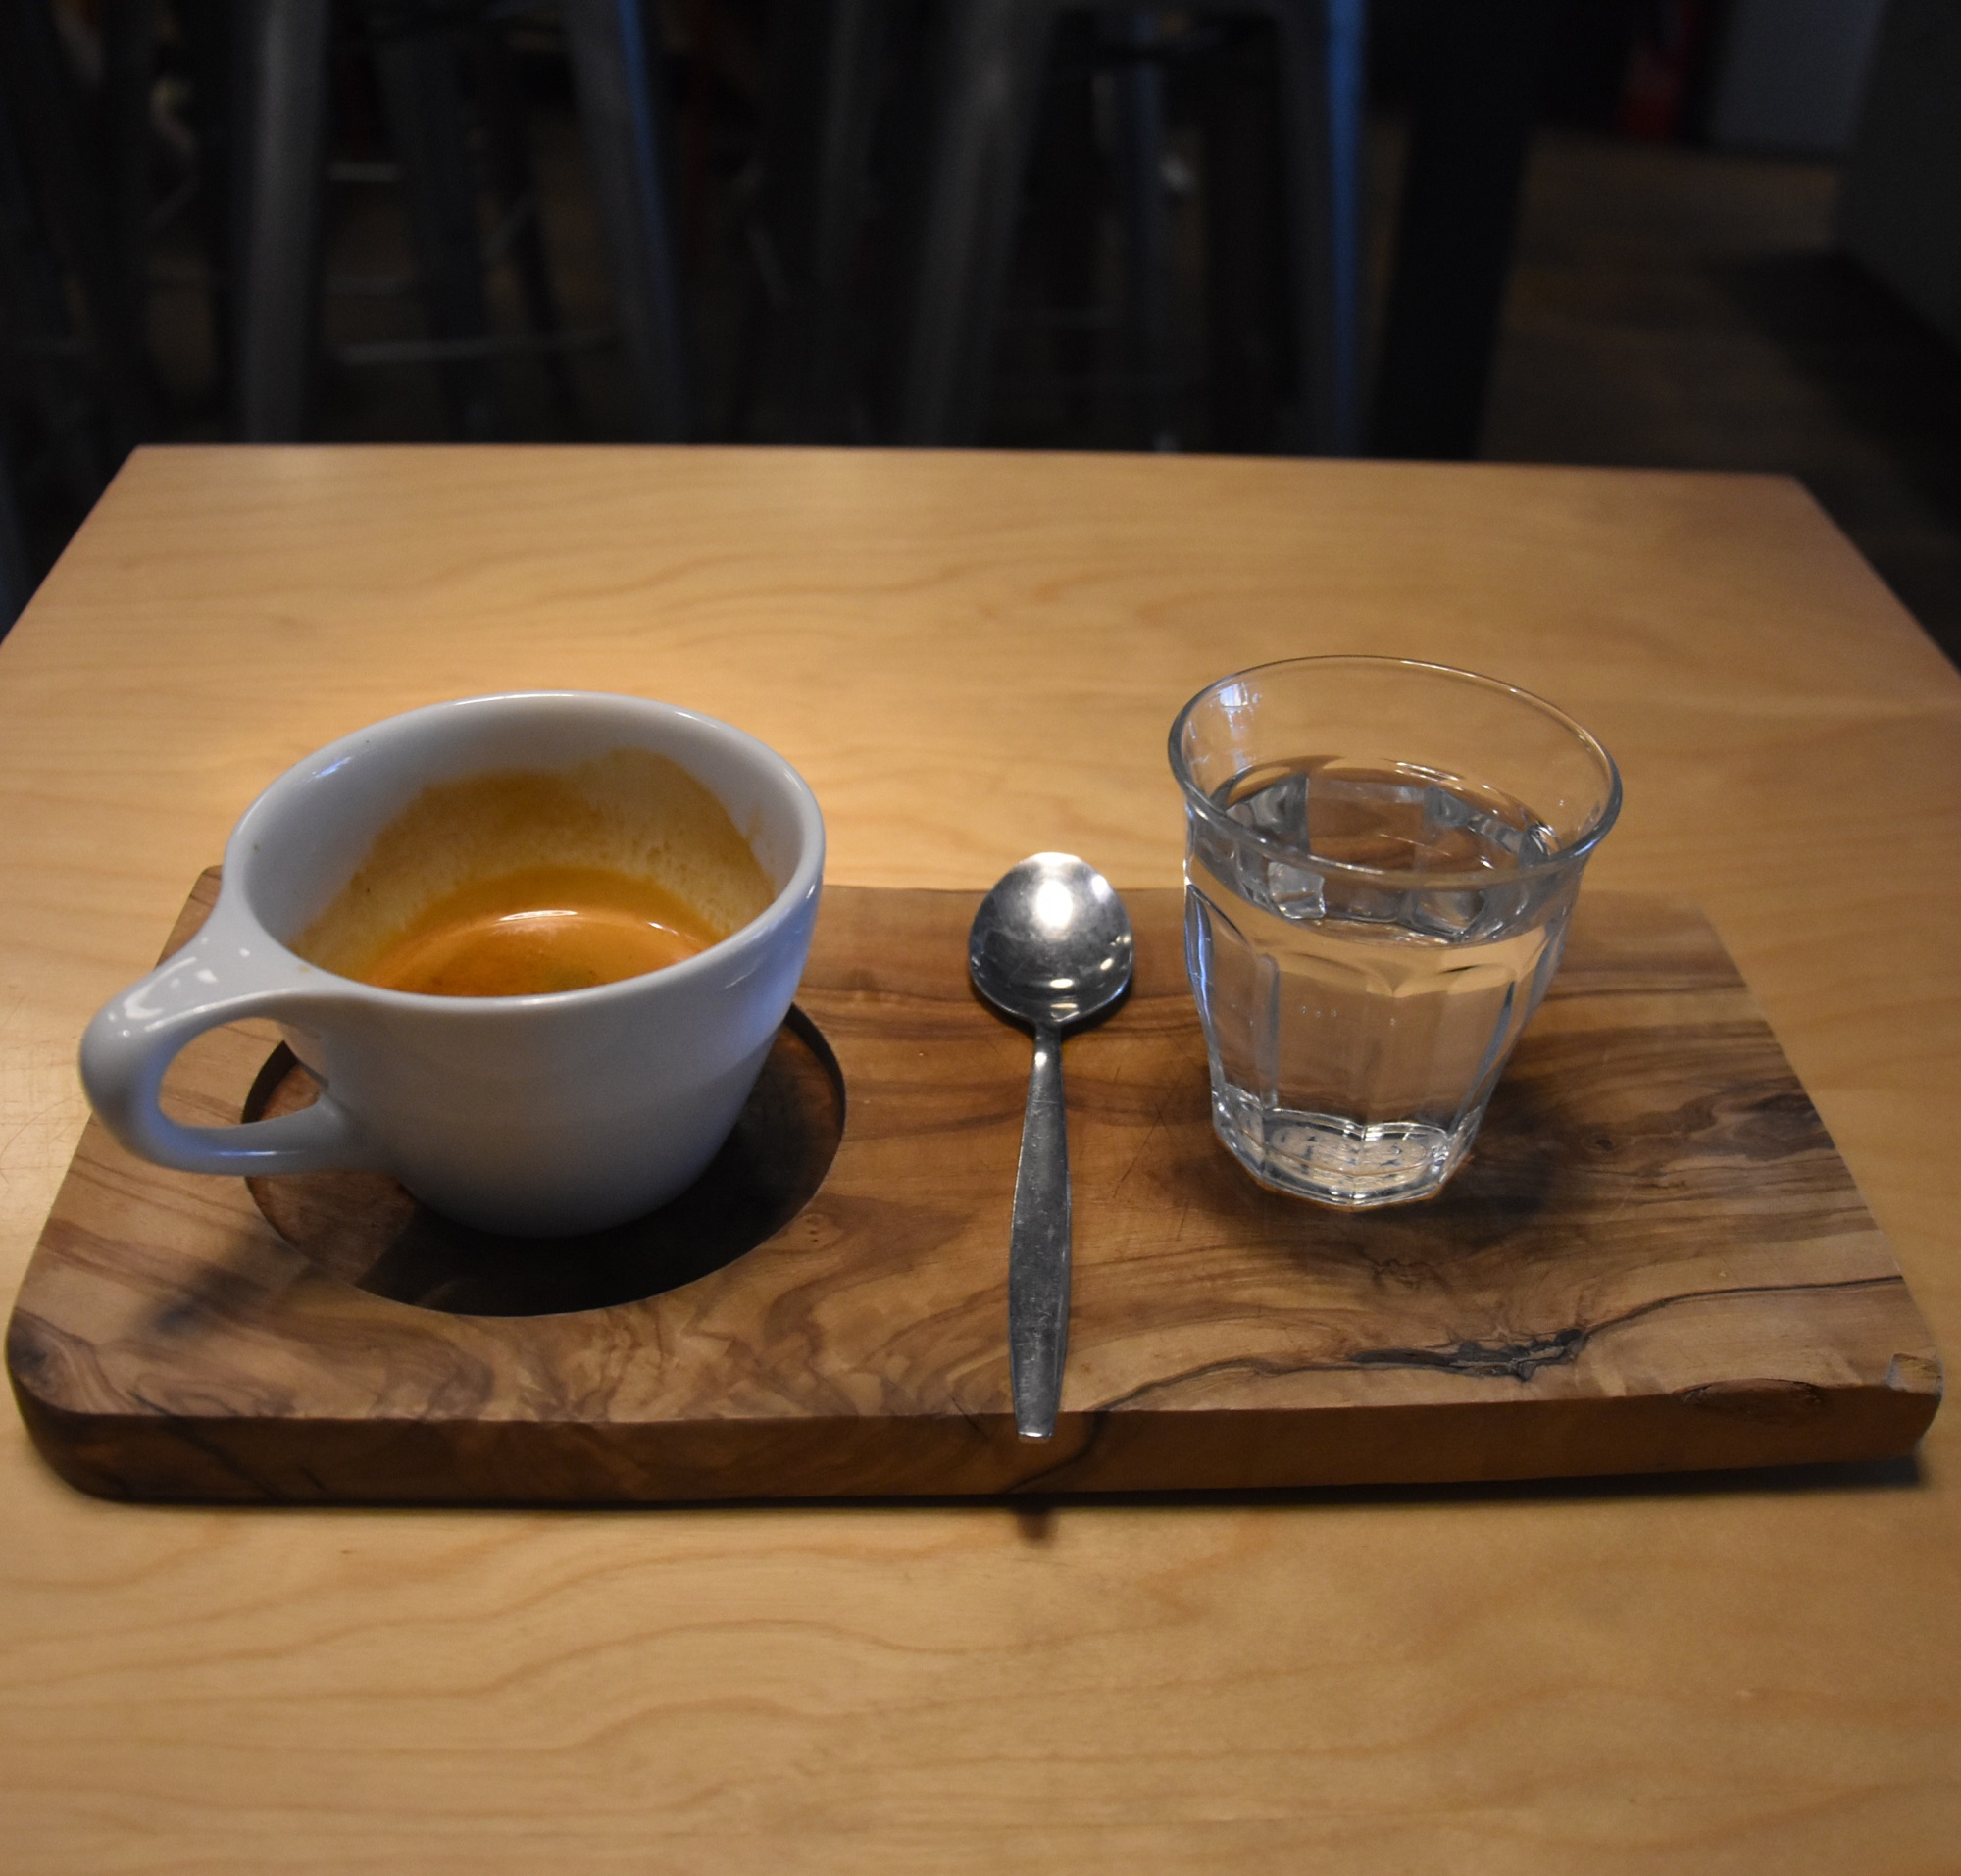 My single-origin Ethiopian Yirgacheffe, a washed coffee from the Negele Gorbitu co-operative, roasted and served by Beanberry Coffee in an over-sized cup on a wooden tray, a glass of water on the side.